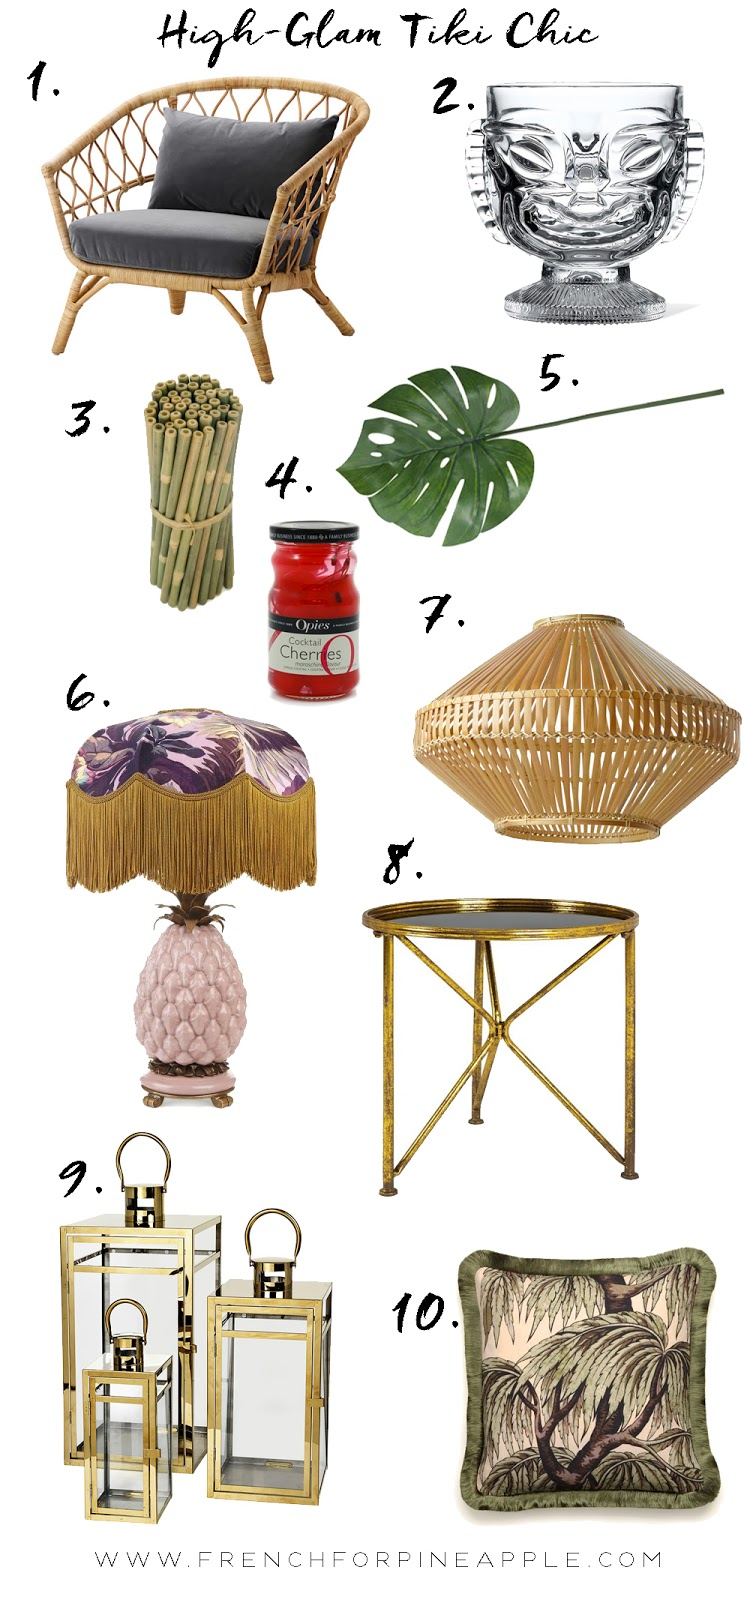 French For Pineapple Blog - High-Glam Tiki Chic